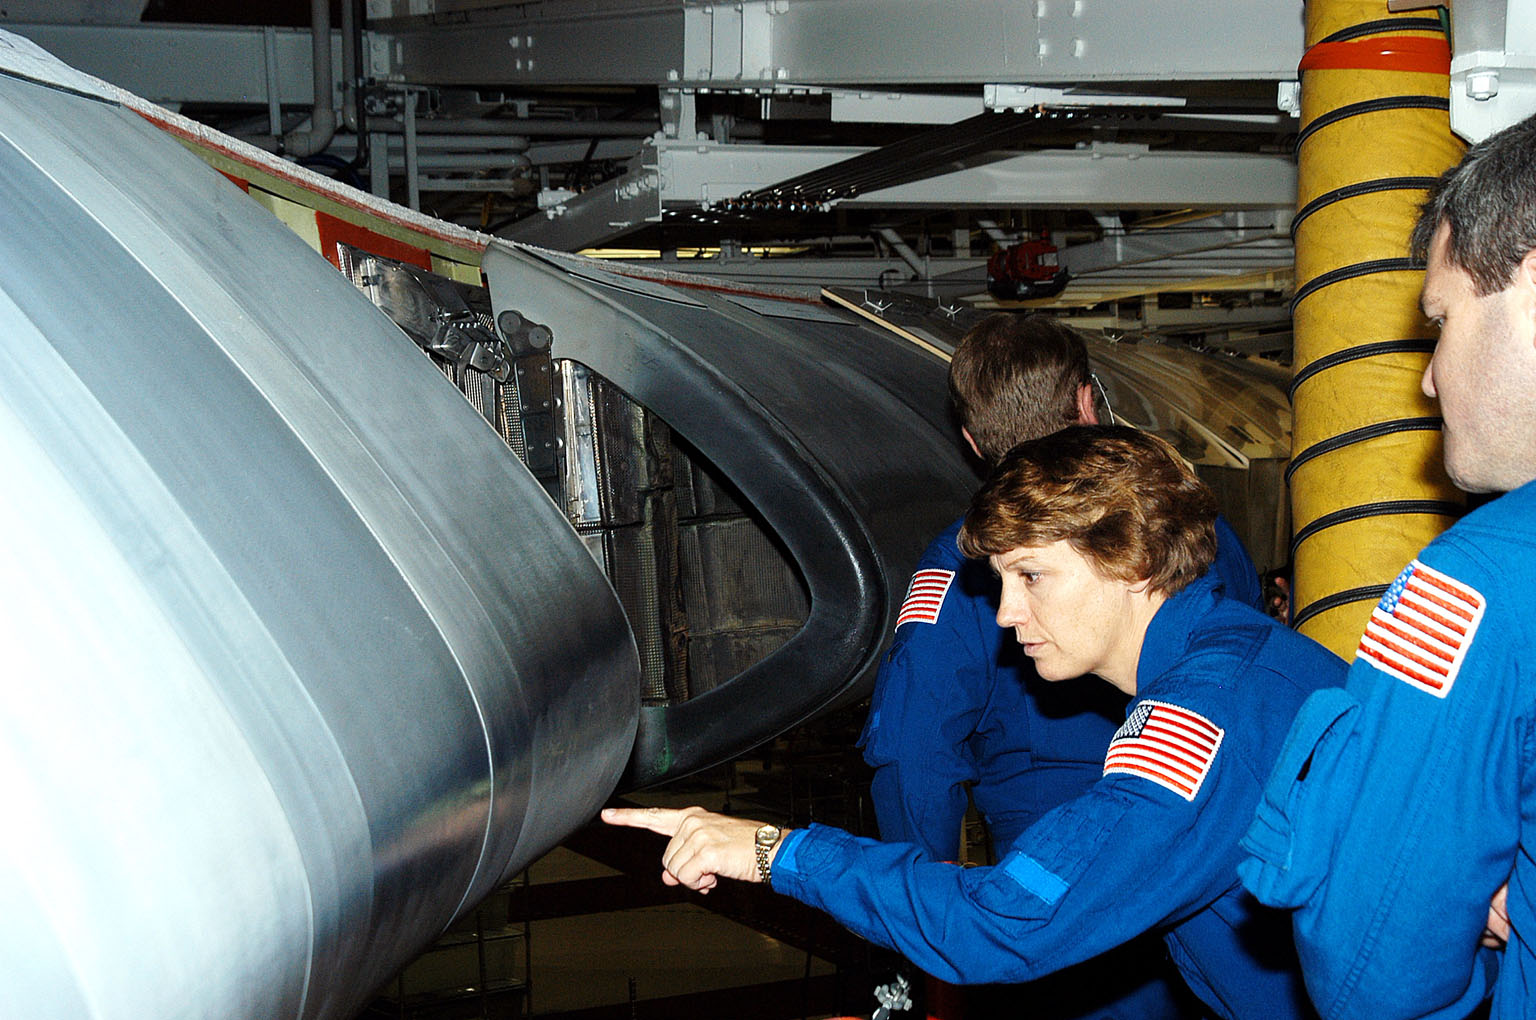 KENNEDY SPACE CENTER, FLA. - In the Orbiter Processing Facility, STS-114 Mission Commander Eileen Collins looks closely at a reinforced carbon-carbon panel on the wing of Atlantis. She and other crew members are at KSC to take part in crew equipment and orbiter familiarization.